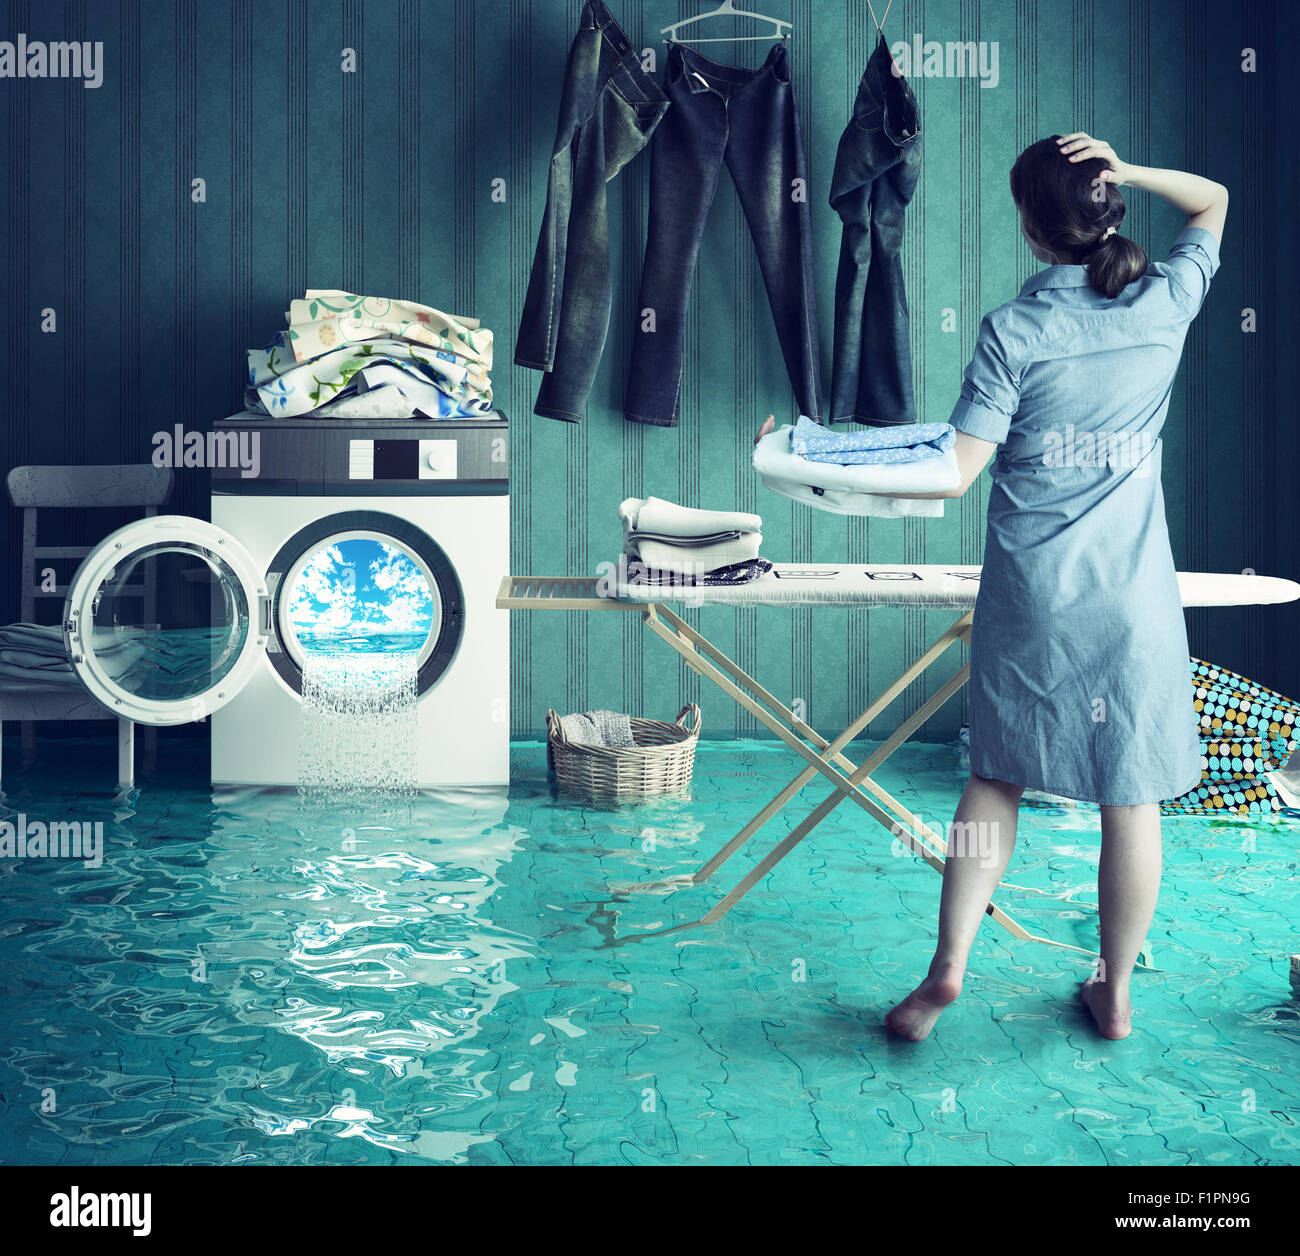 Housewife`s dreams. Creative concept. Photo combination - Stock Image